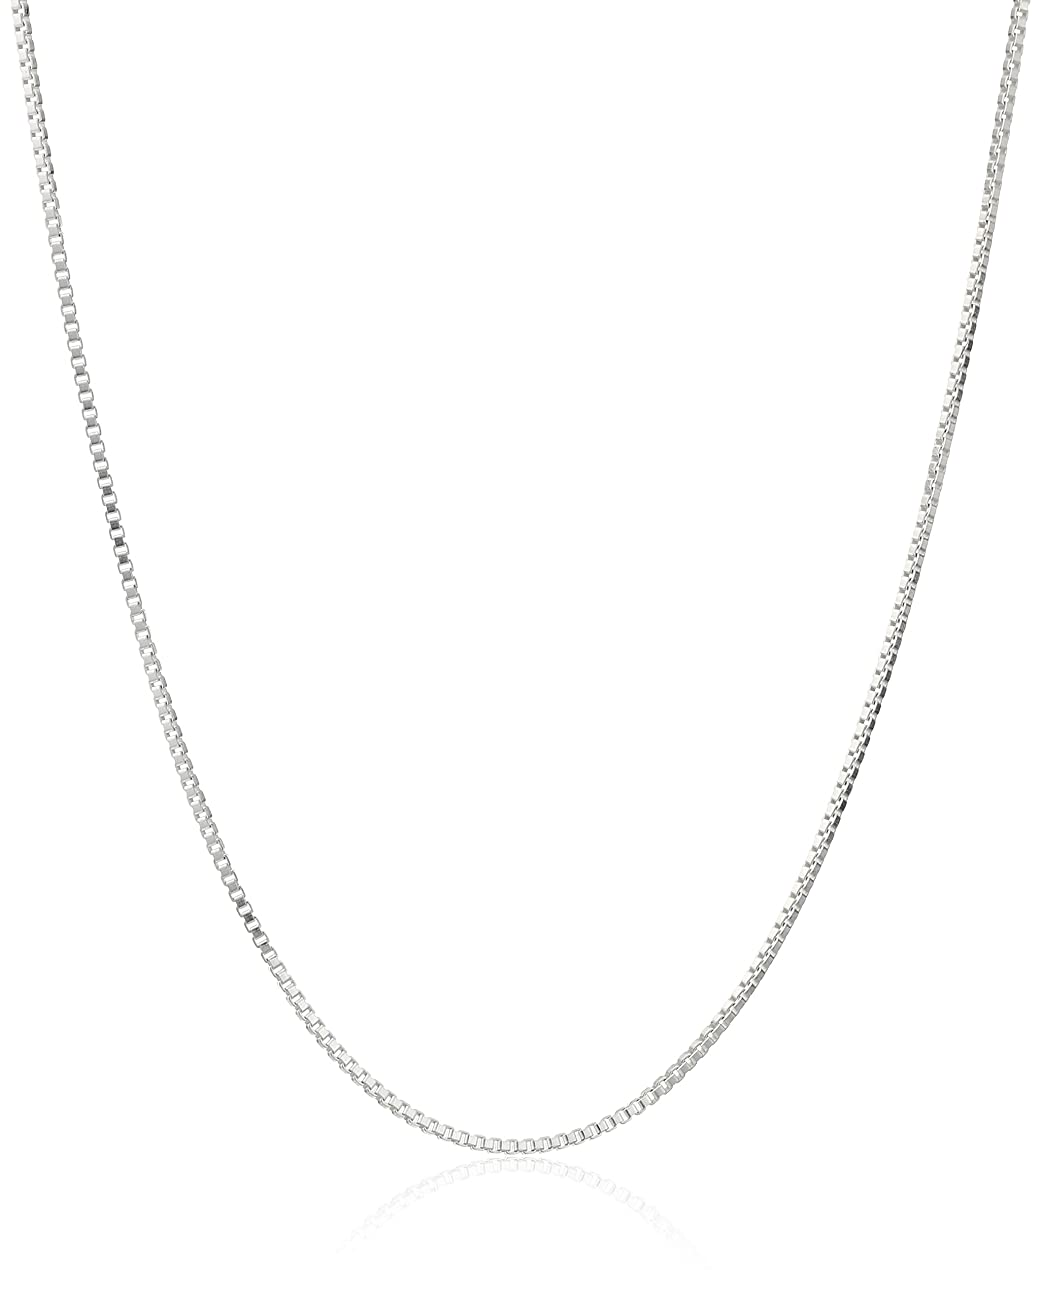 Honolulu Jewelry Company Sterling Silver 1mm Box Chain Necklace, 14